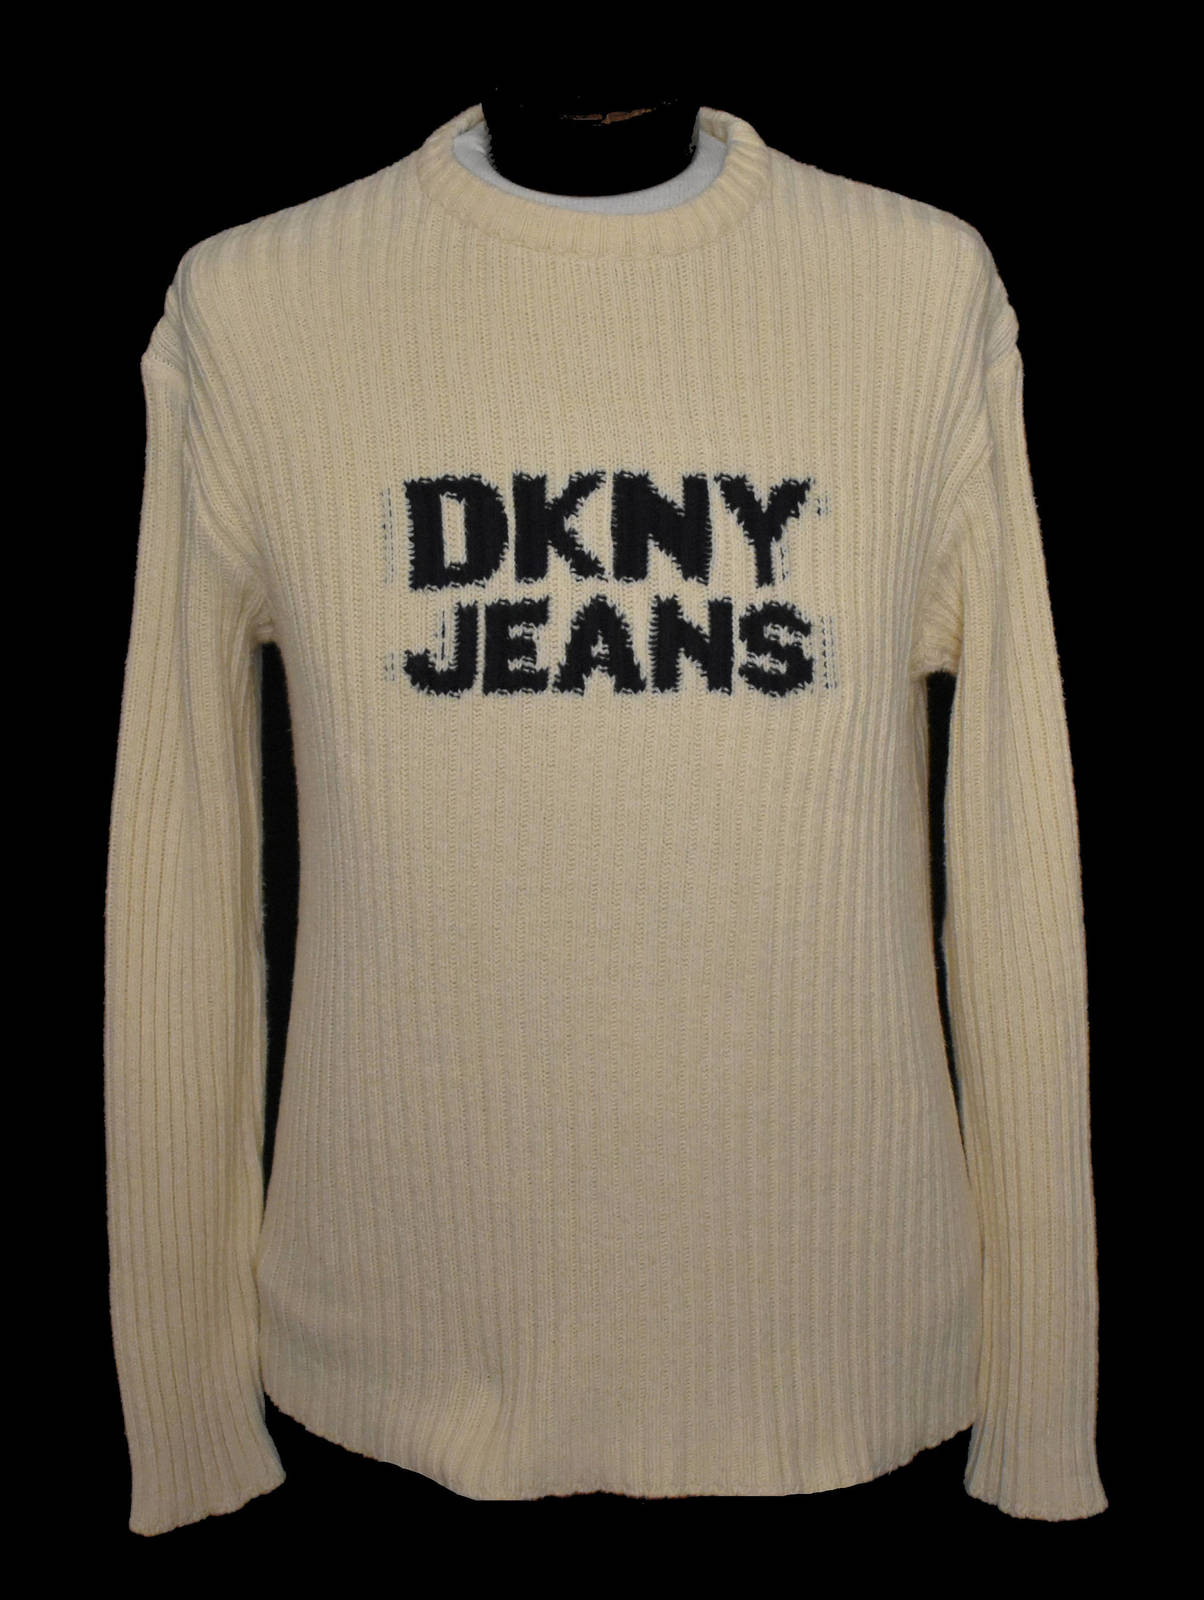 827f7163d8 Vintage 90s DKNY Jeans Spellout Sweater and similar items. Il  fullxfull.1407609226 23h3